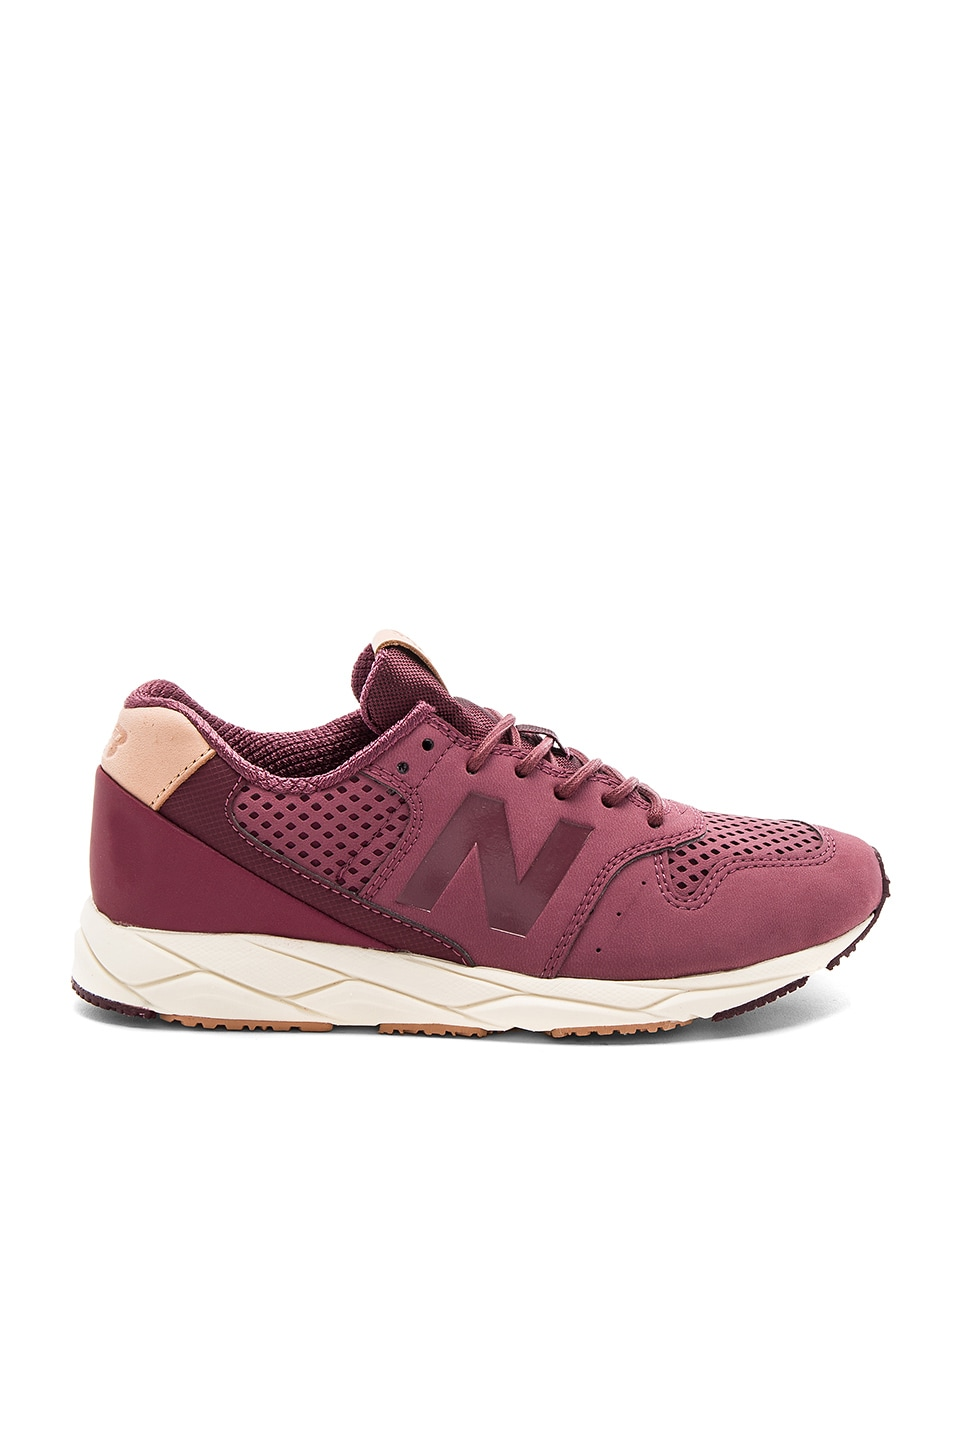 New Balance Mash Up Sneaker in Boysenberry